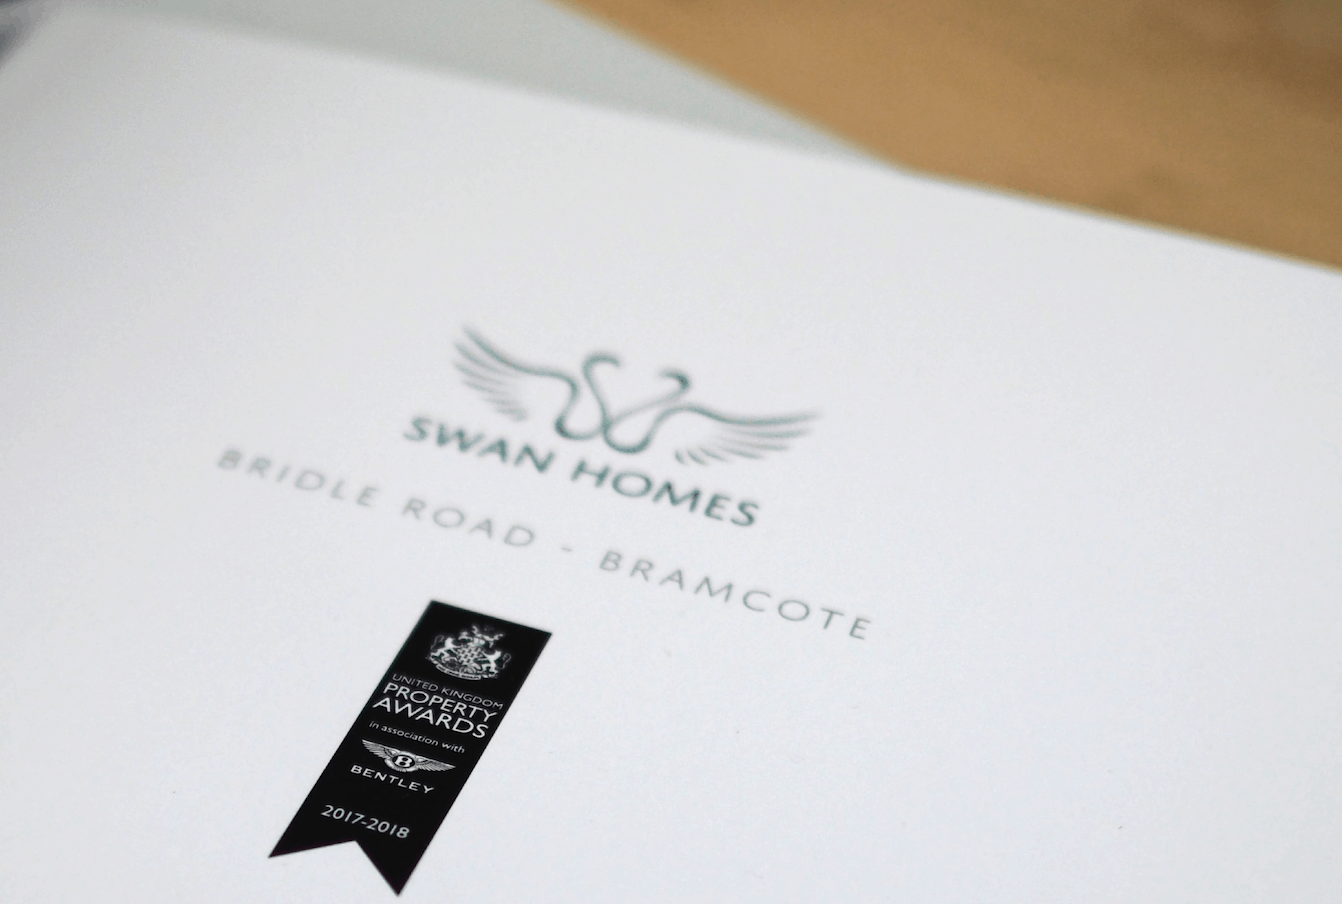 Sales brochure for Bramcote development released